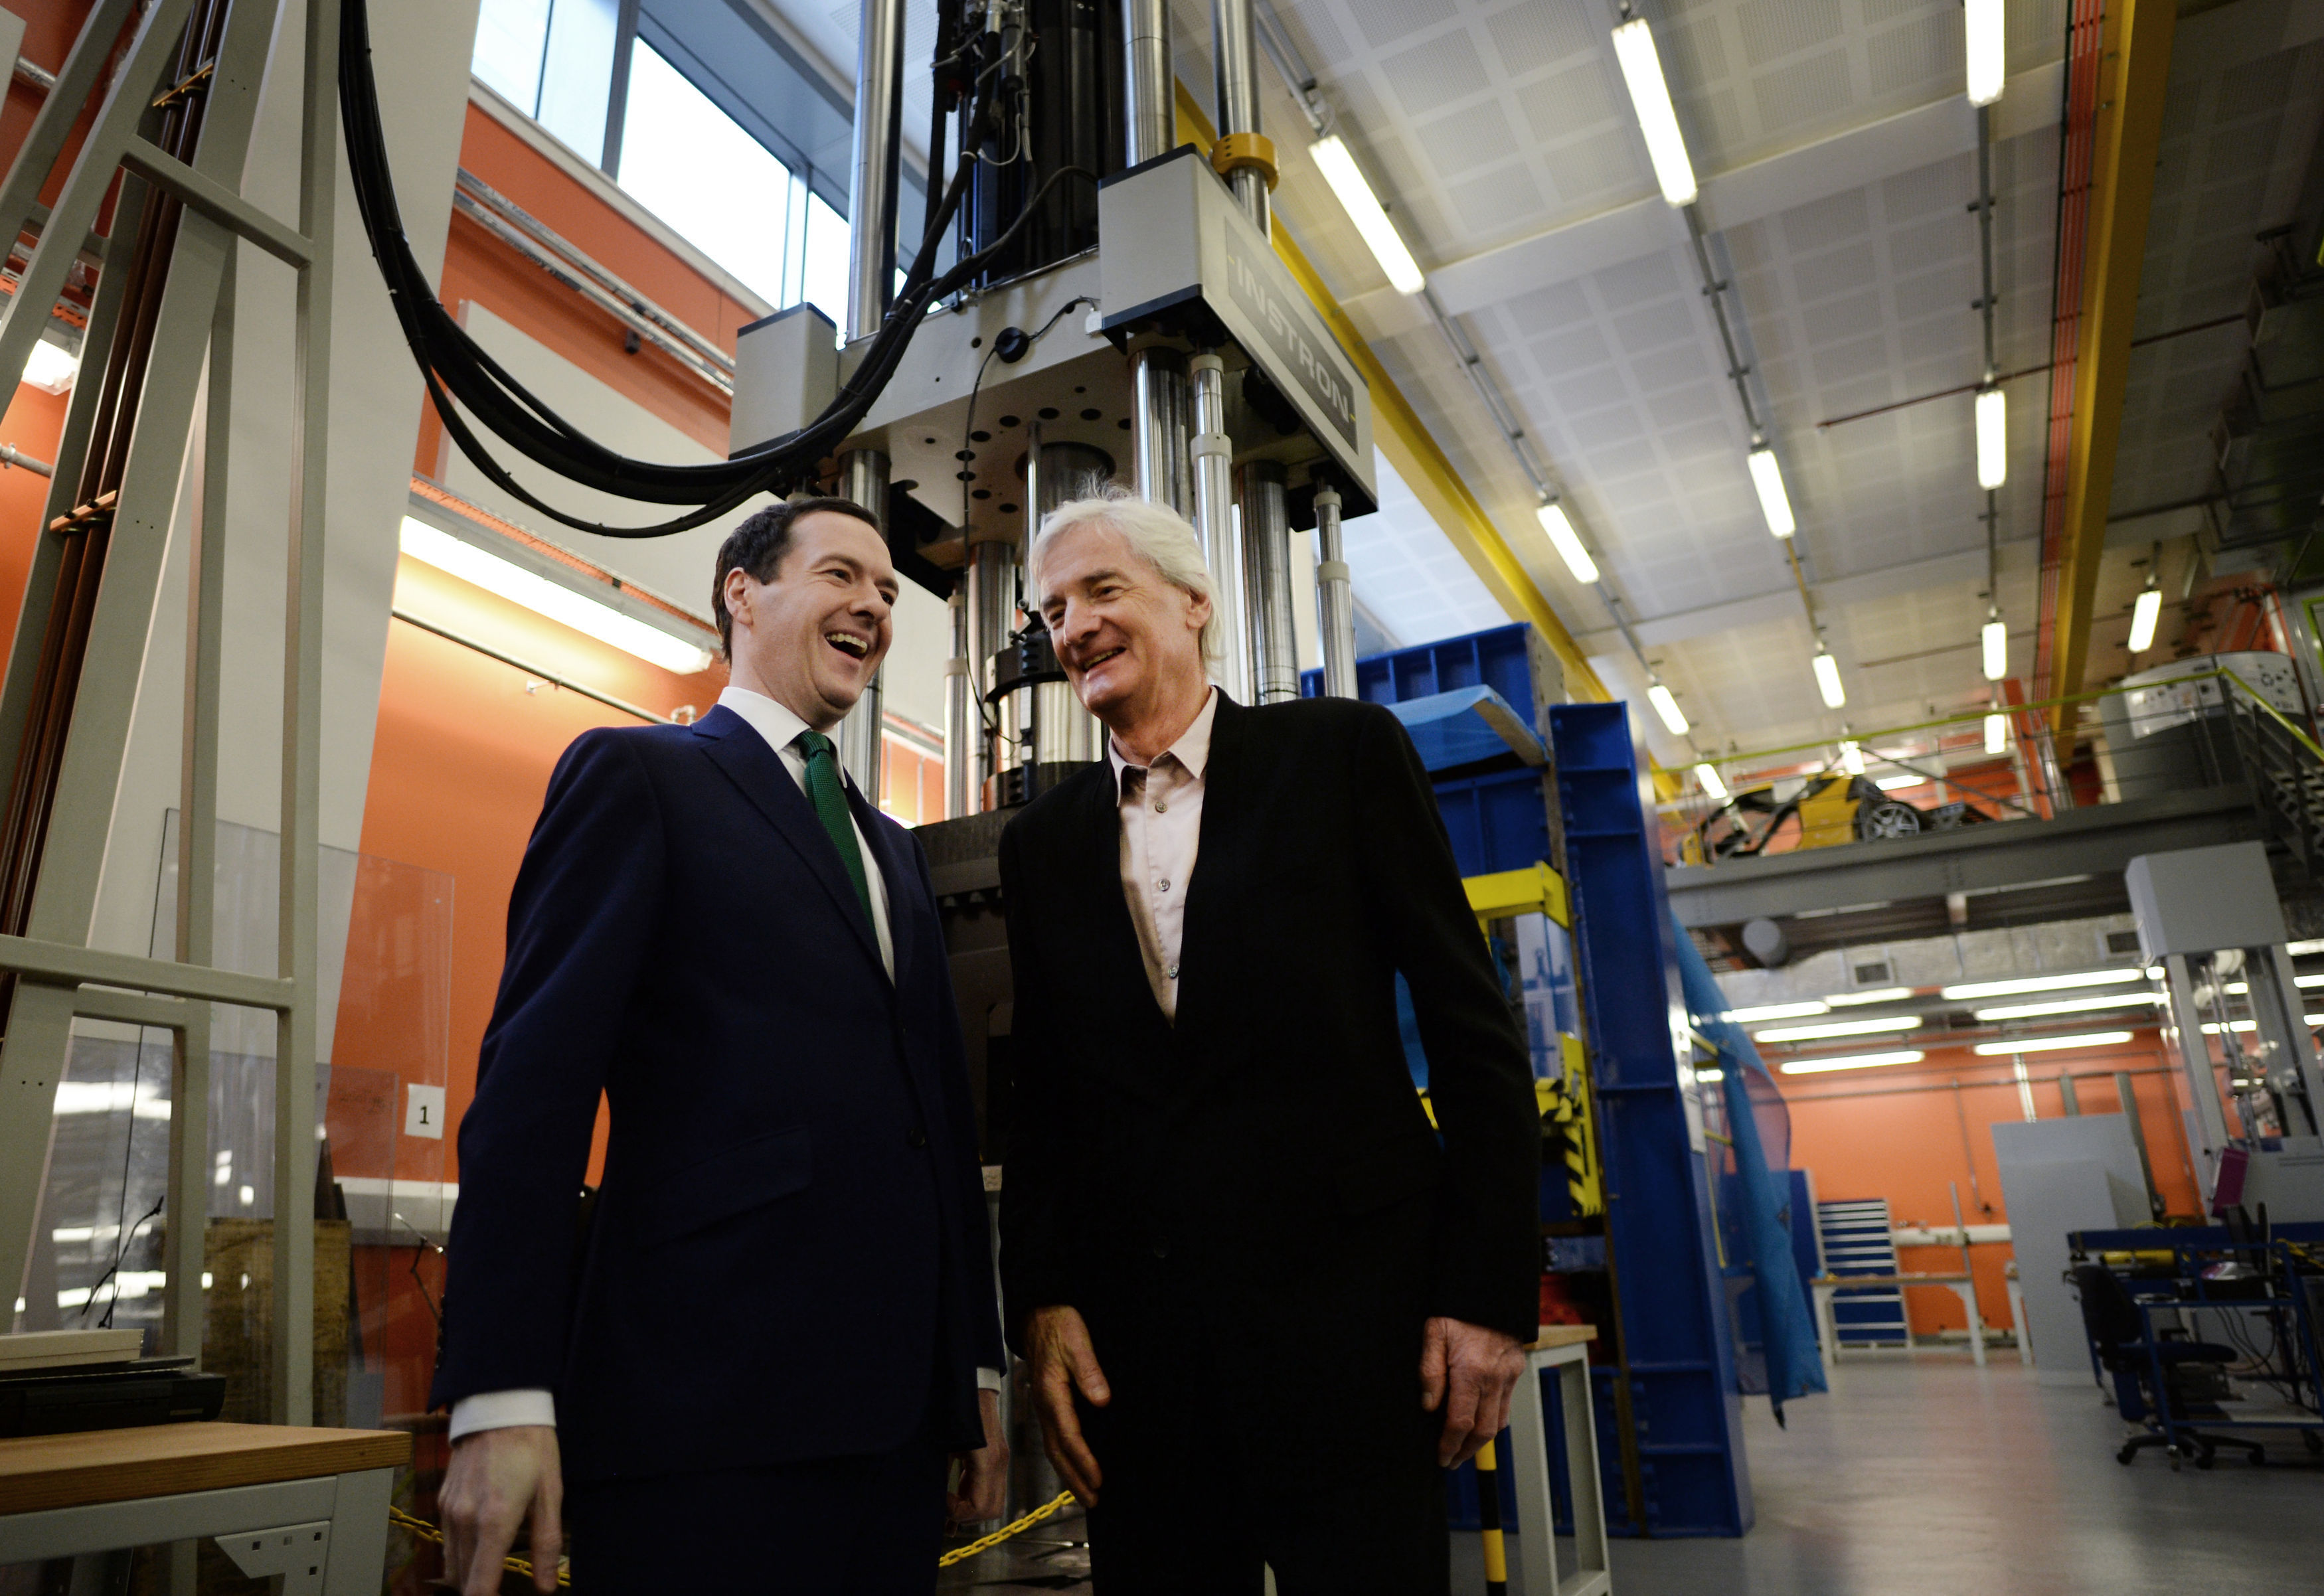 Chancellor of the Exchequer George Osborne (left) talks with designer and inventor, James Dyson, during a visit to the Science Museum and Imperial College in London, where they met students and staff before announcing a £12 million donation to the new Dyson School of Design Engineering.